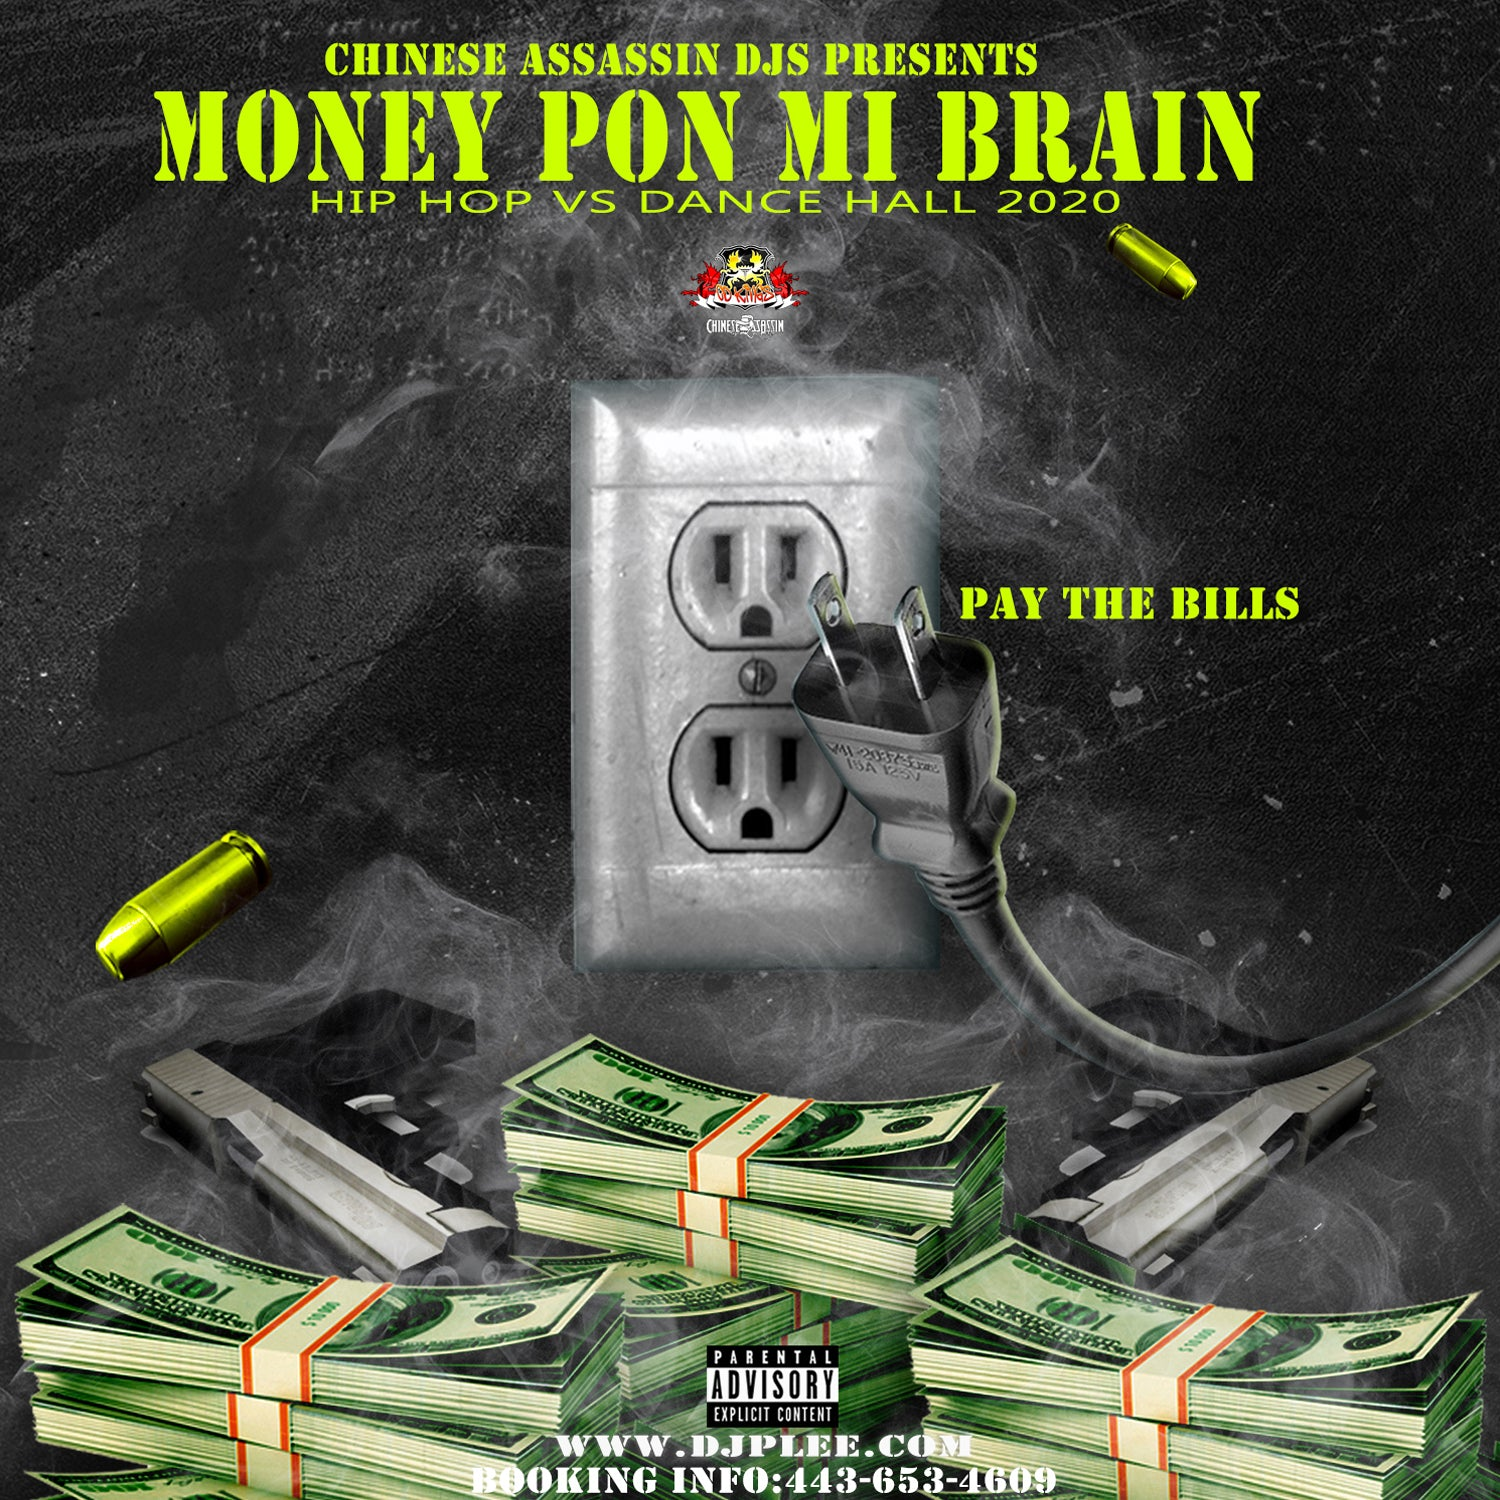 Money Pon Mi Brain  (Very Wicked)